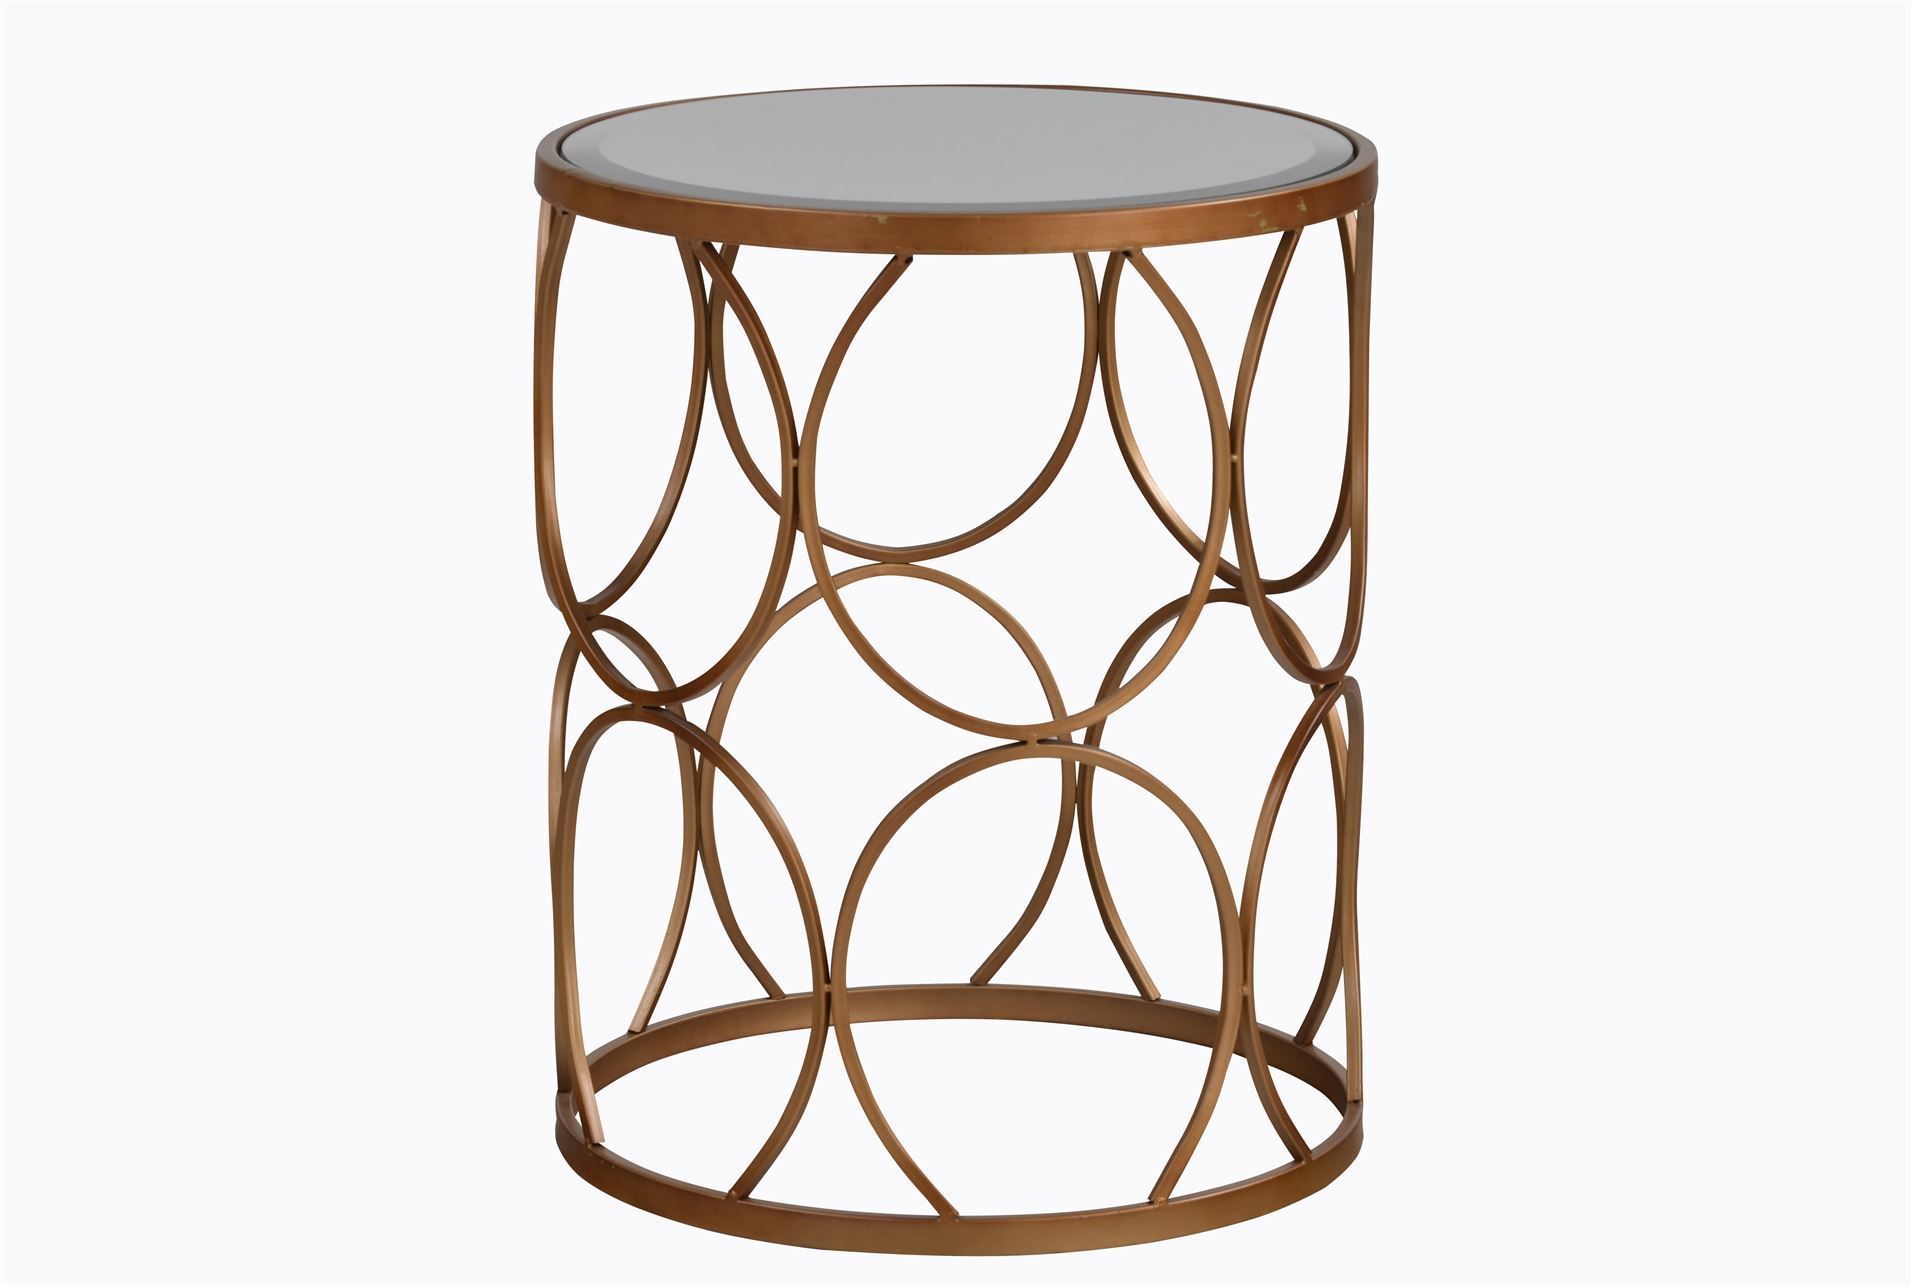 side table formal room living spaces tabitha bronze accent tables two lieu coffee uttermost lamps chinese lanterns vintage storage trunks teak end indoor real marble mosaic